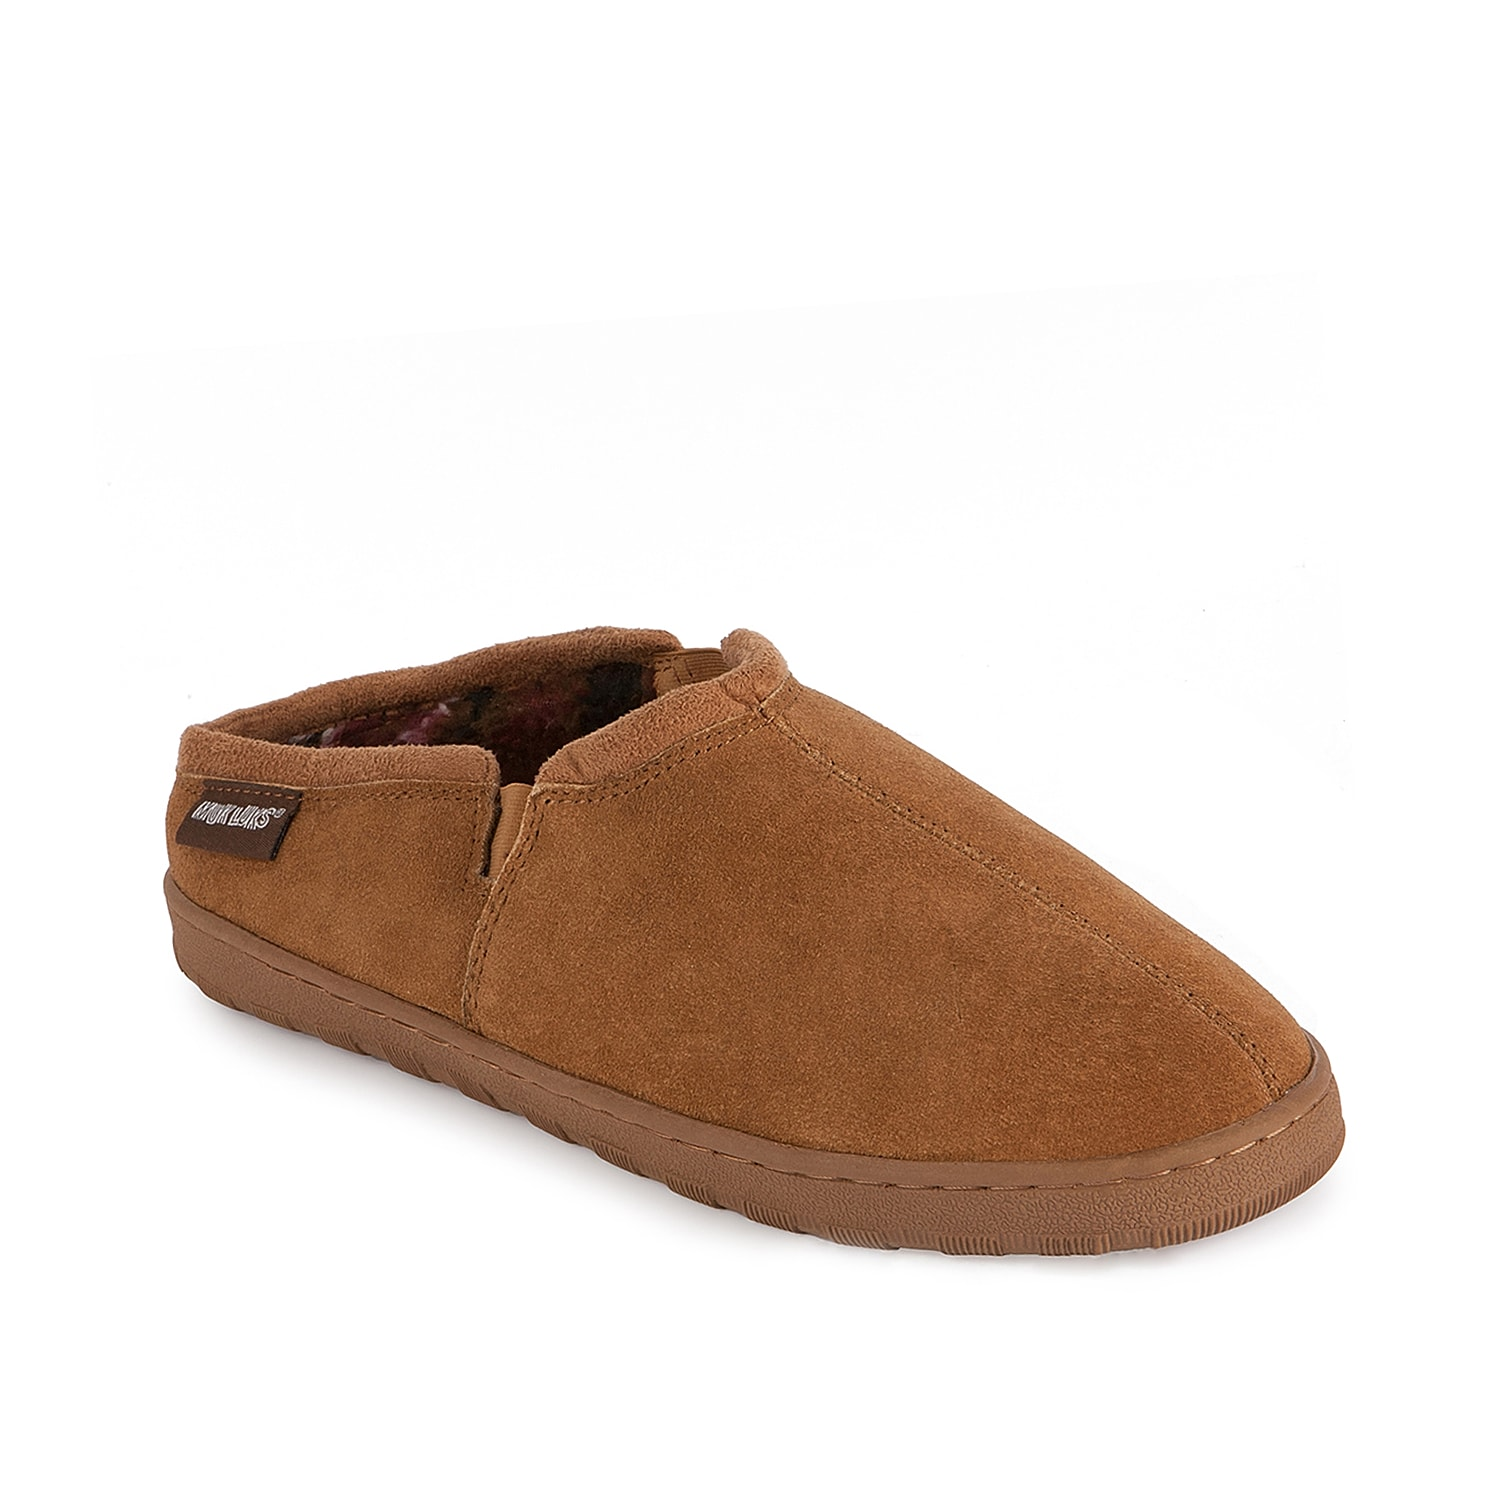 For great comfort and style that will keep your feet cozy and snug, the Muk Luks Matt slip-on will be your perfect choice.